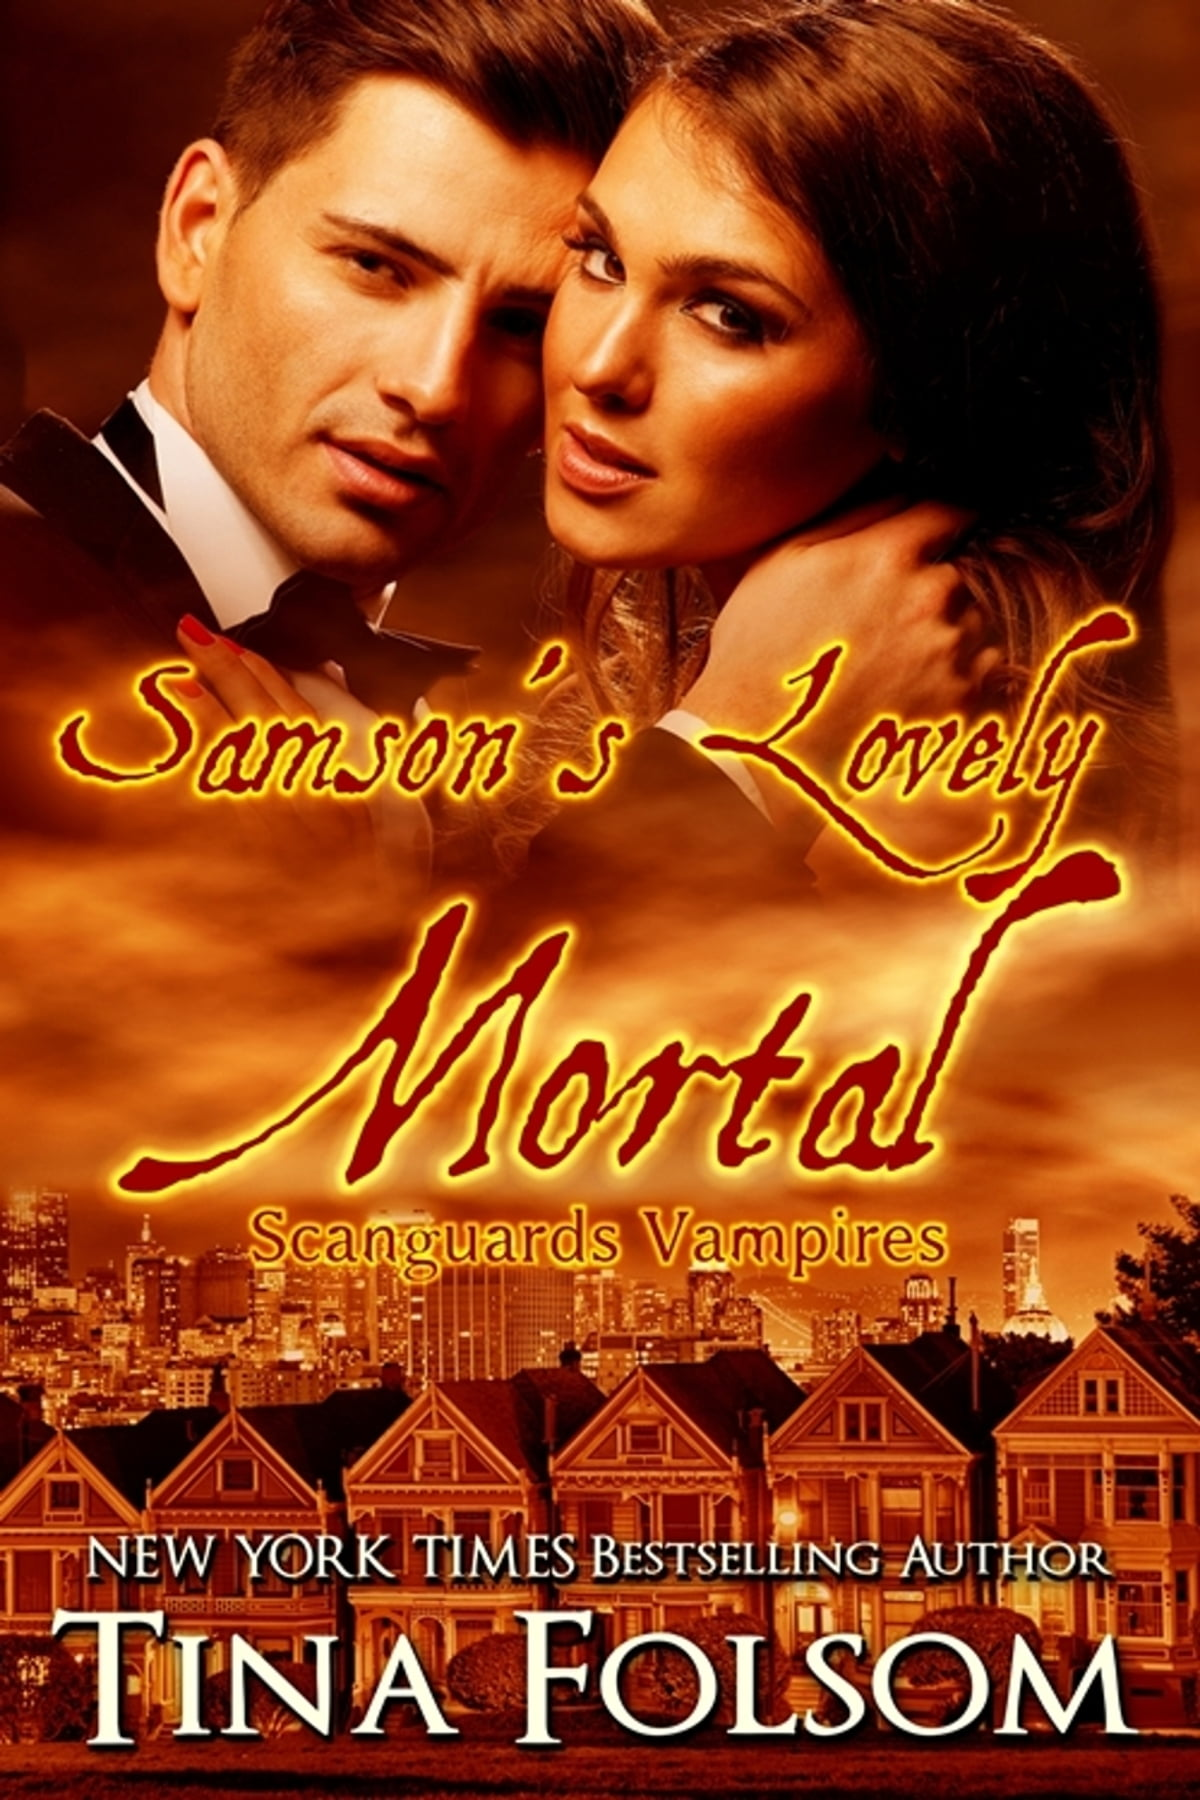 Samson's Lovely Mortal (scanguards Vampires #1) Ebook By Tina Folsom   9780983612902  Rakuten Kobo